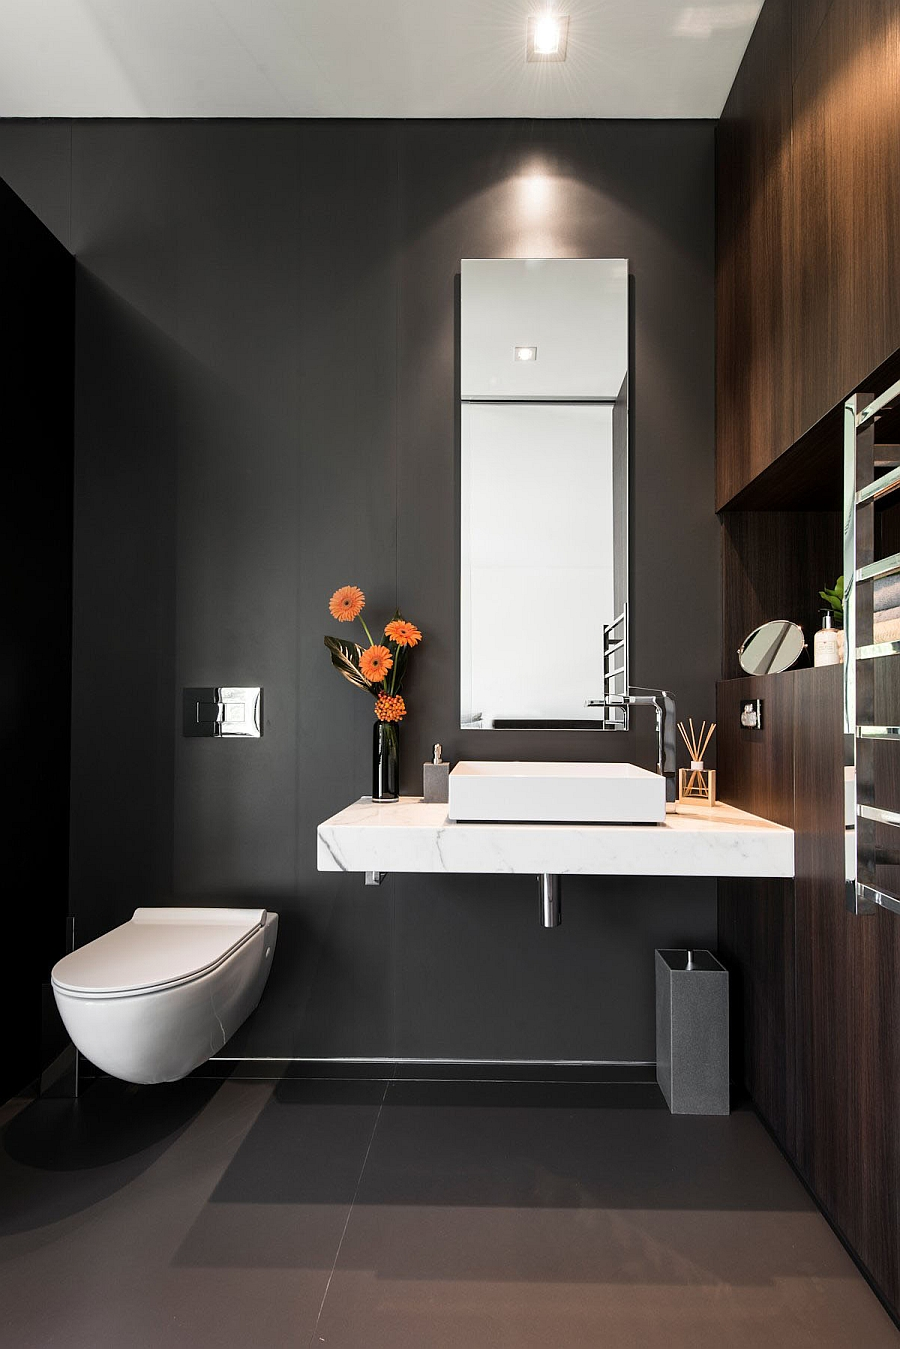 Design idea for an elegant, small bathroom in gray and white